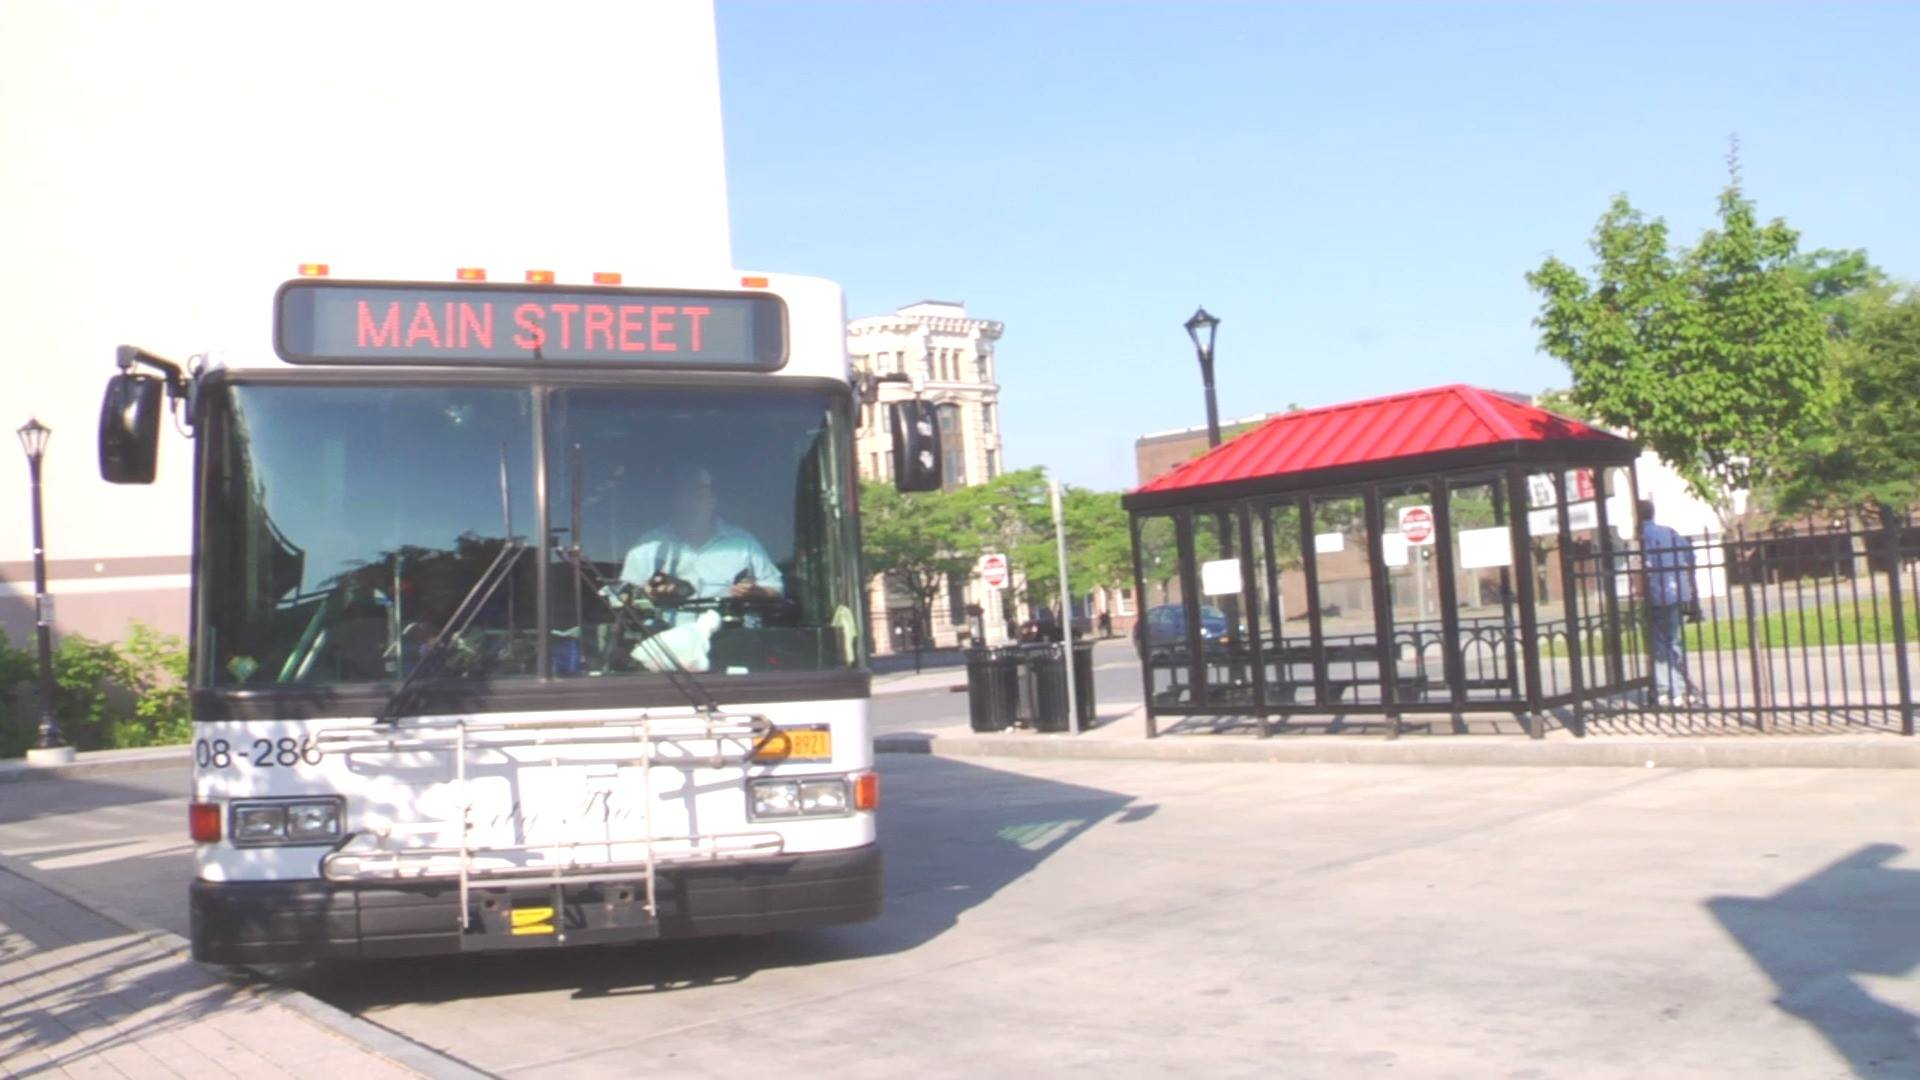 Poughkeepsie Buses: A Civil Rights Issue